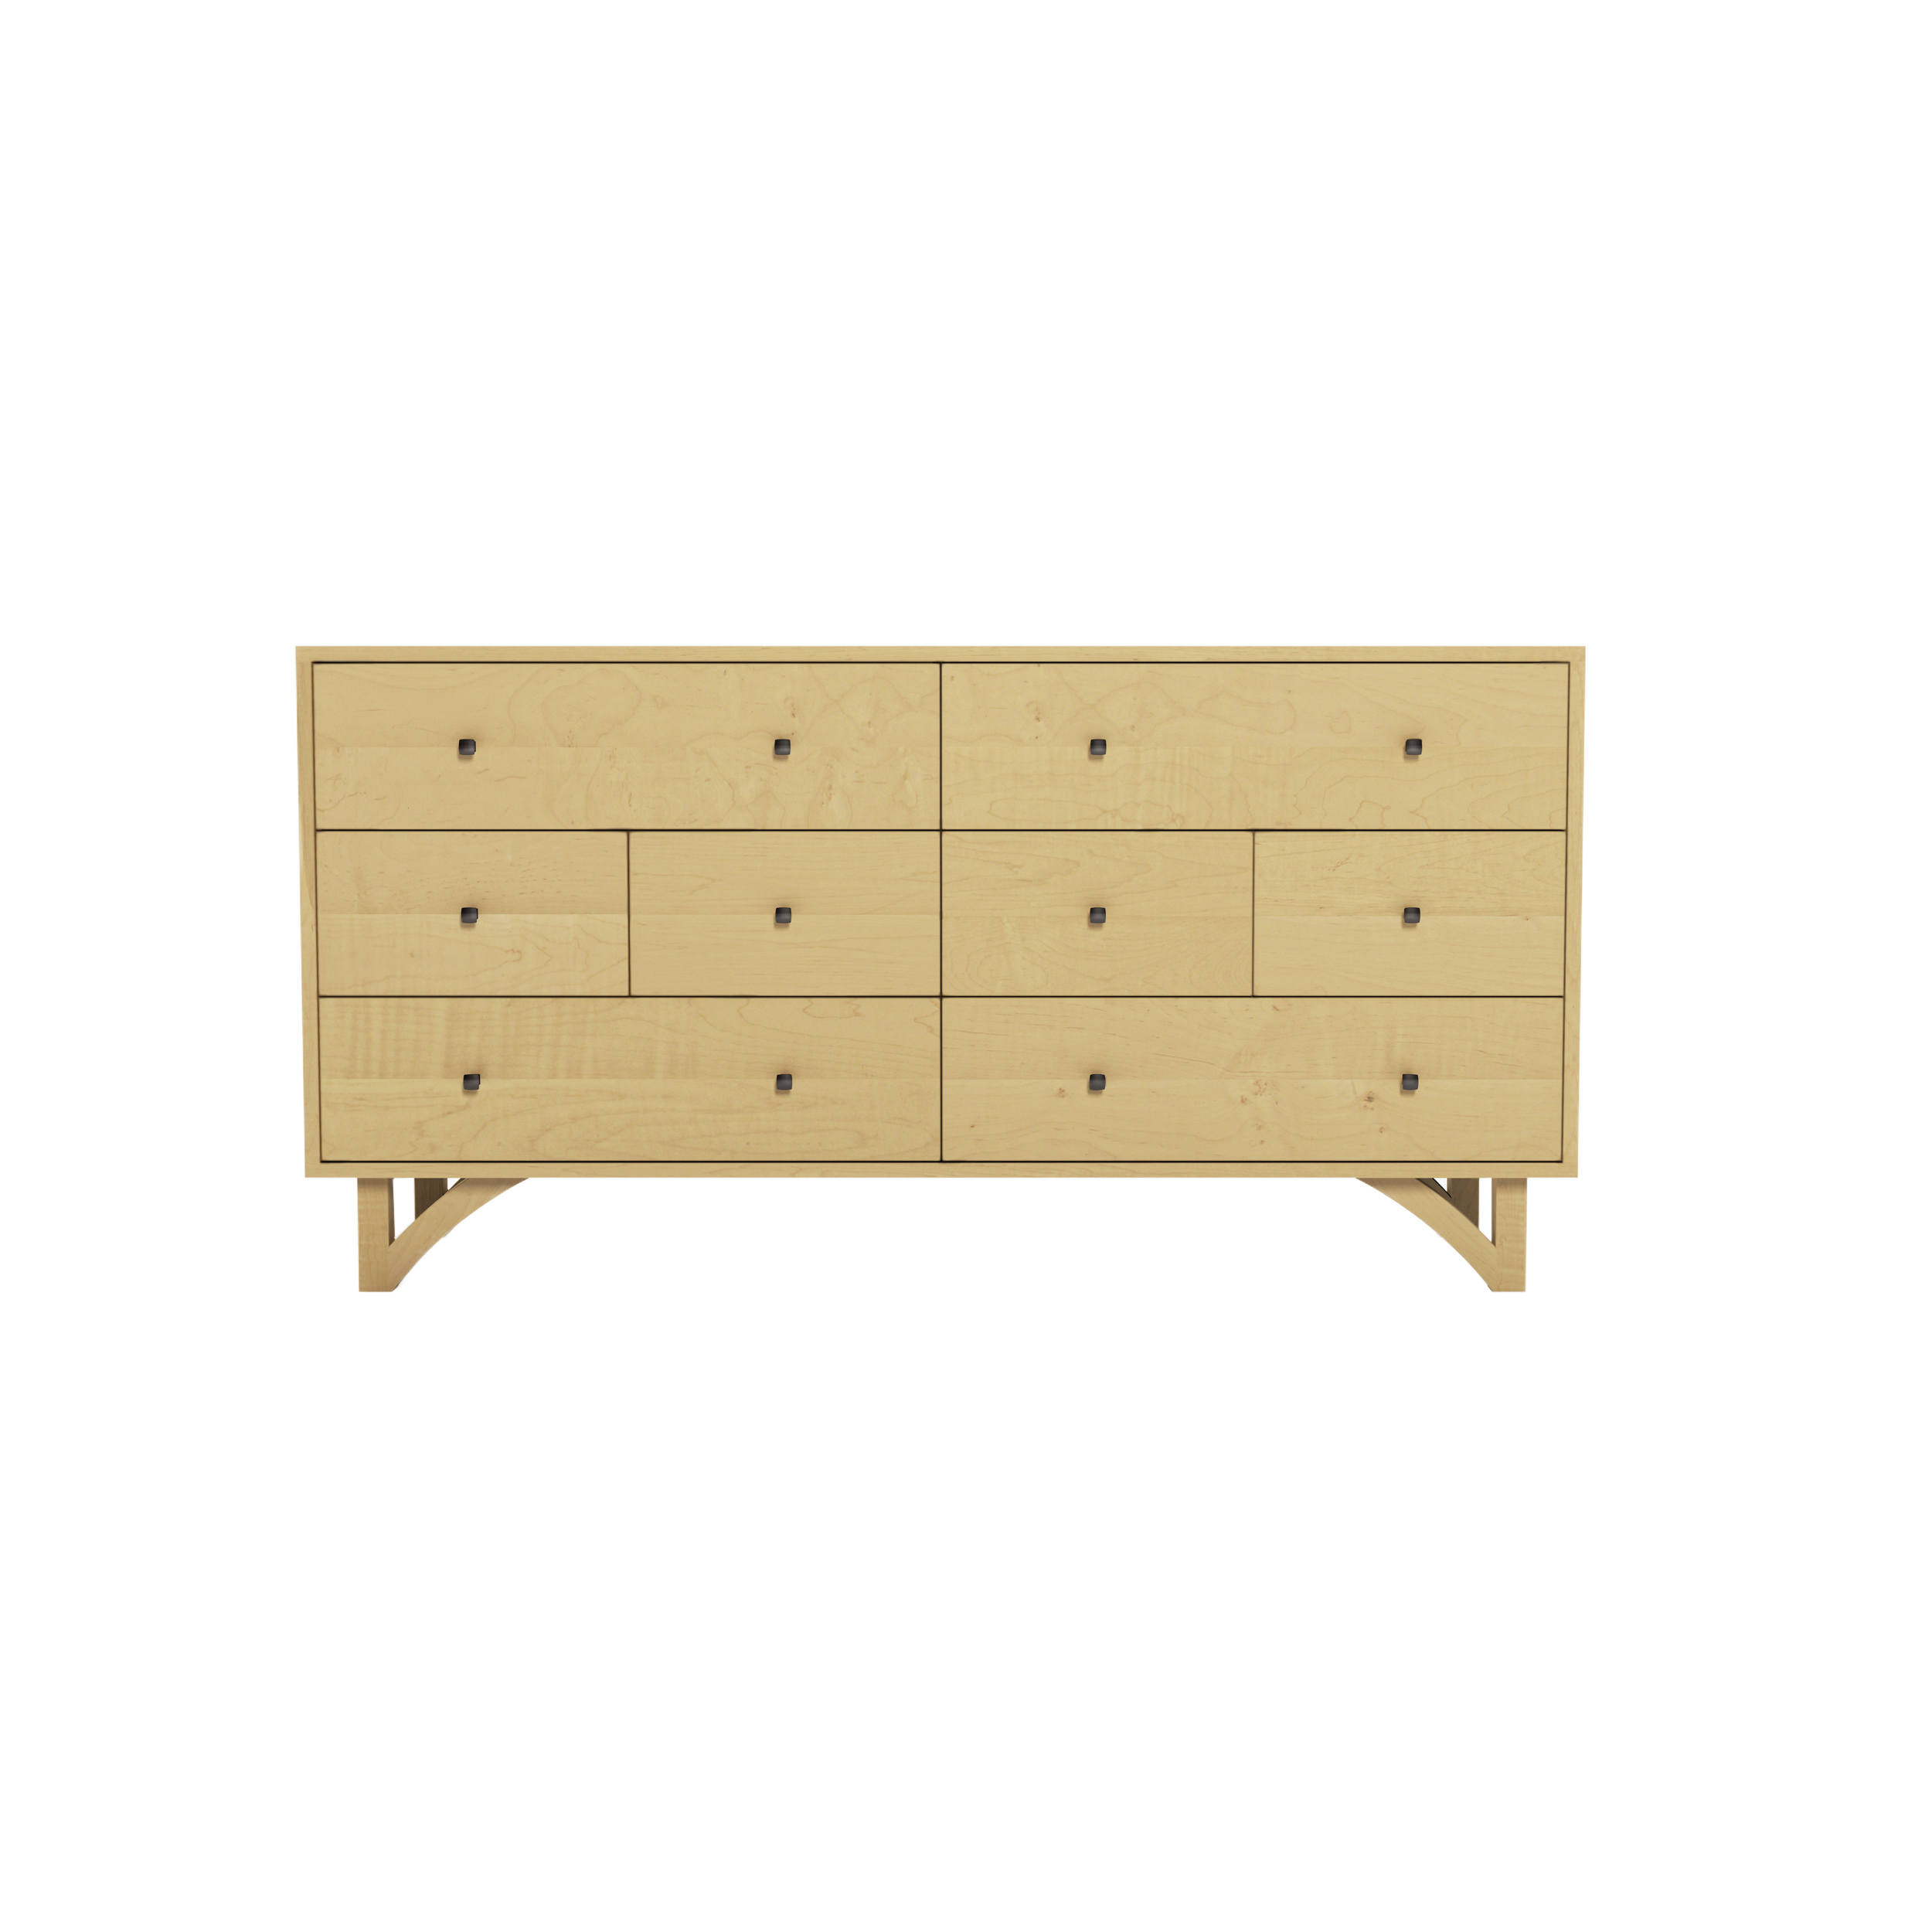 Series 454 Dresser With Eight Drawers At 60″ In Width